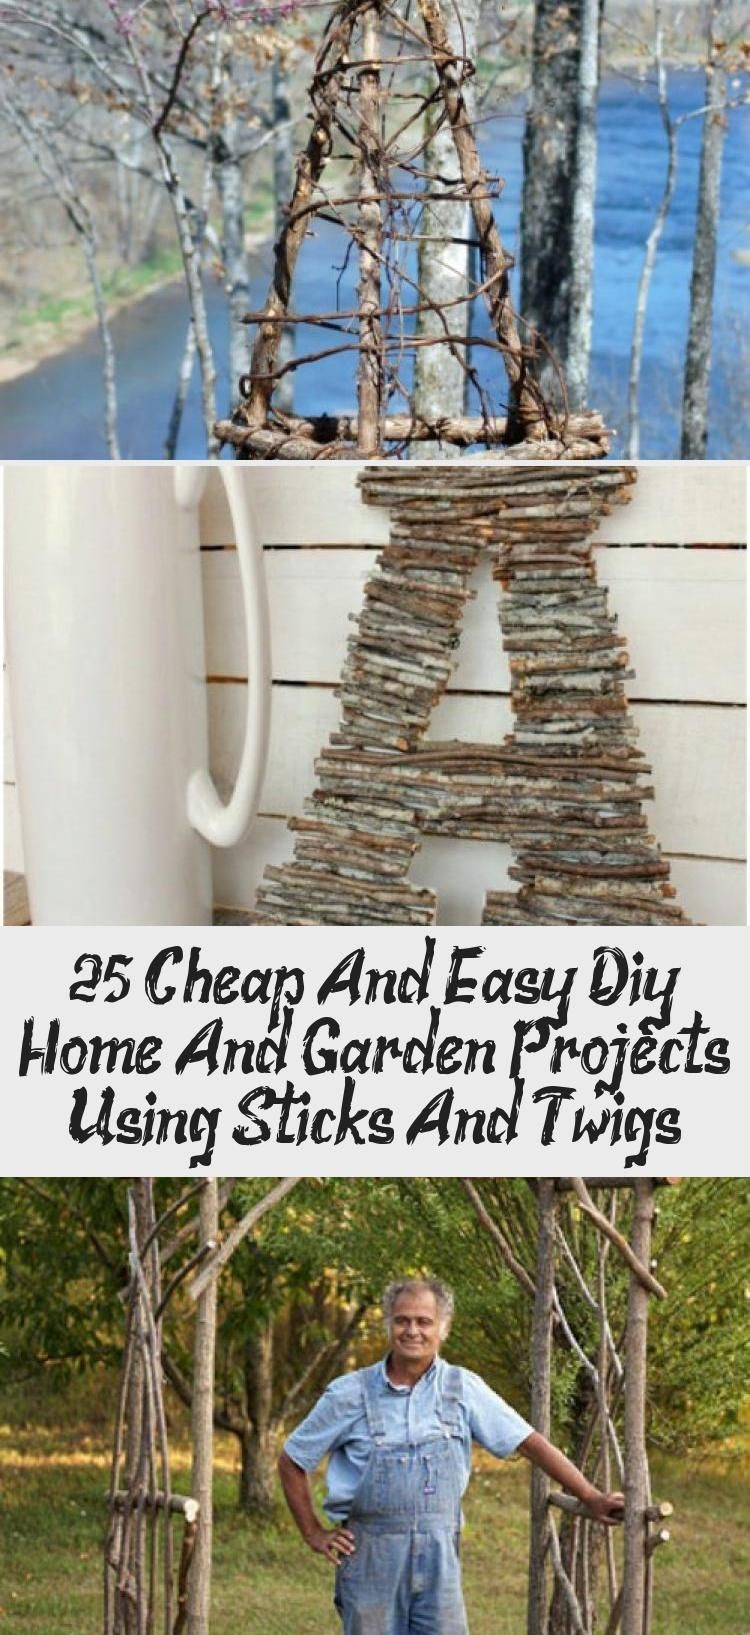 25 Cheap And Easy Diy Home And Garden Projects Using Sticks And Twigs Best Diy Cheap Diy Easy Garden Home Projects St In 2020 Home Diy Easy Diy Garden Projects